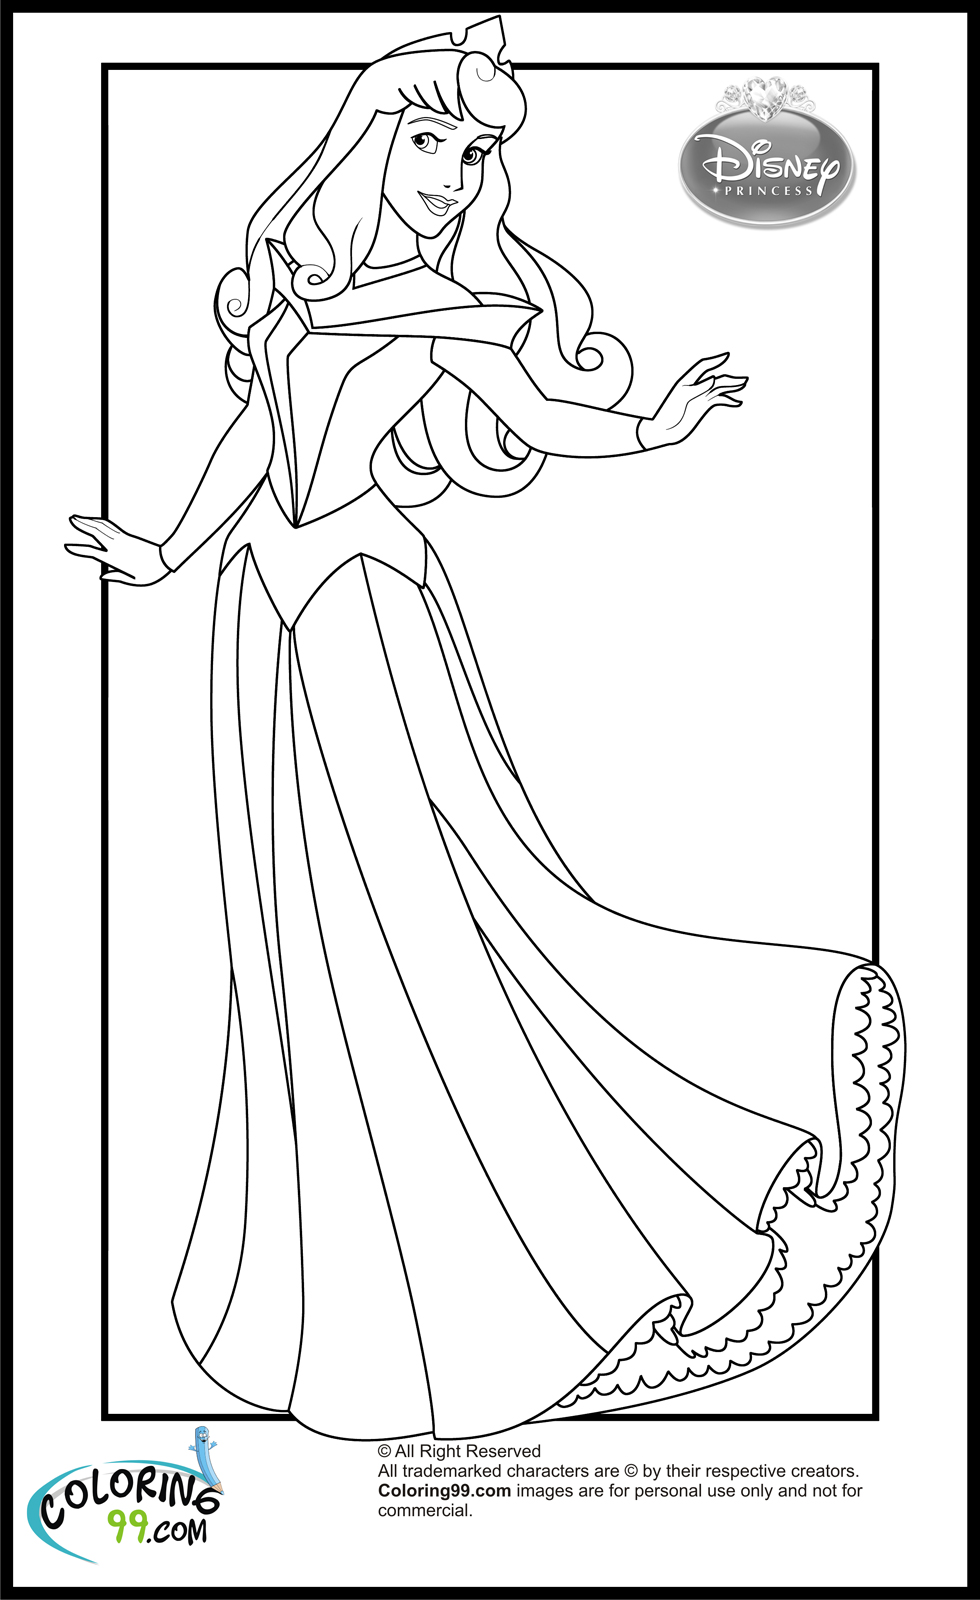 Disney Princess Coloring Pages Download : Aurora disney princess coloring pages download and print